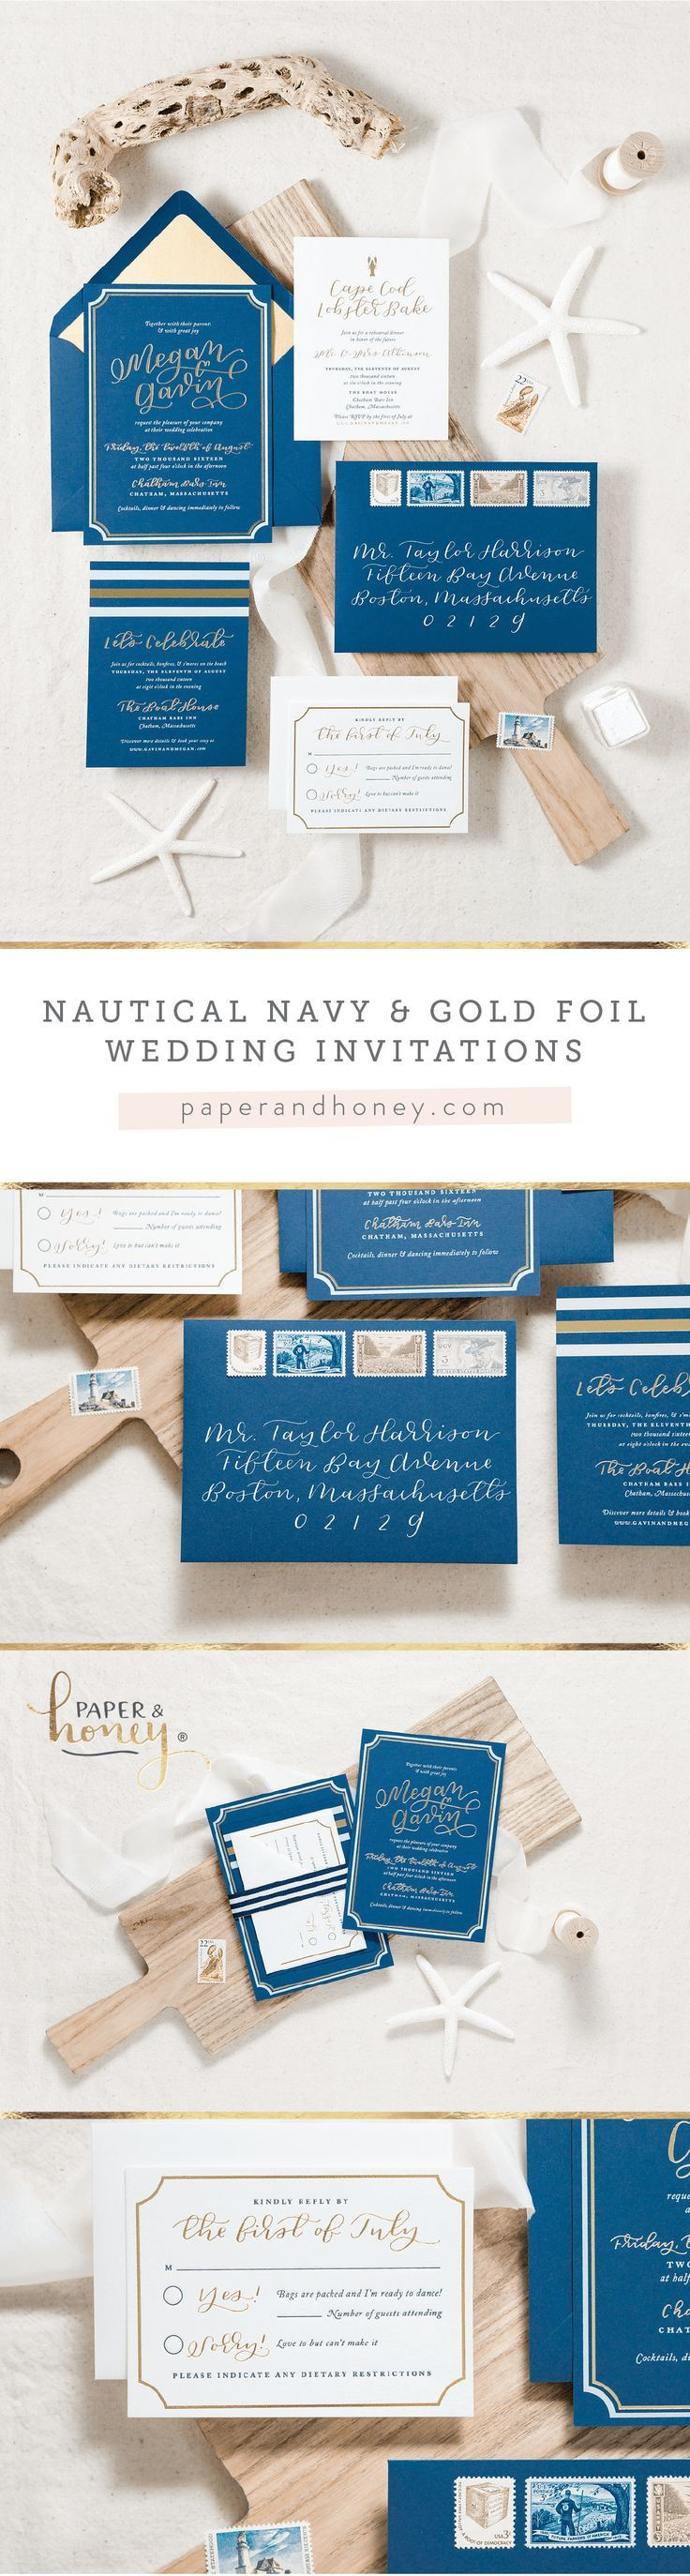 Die besten 25 Nautical wedding stationery Ideen auf Pinterest